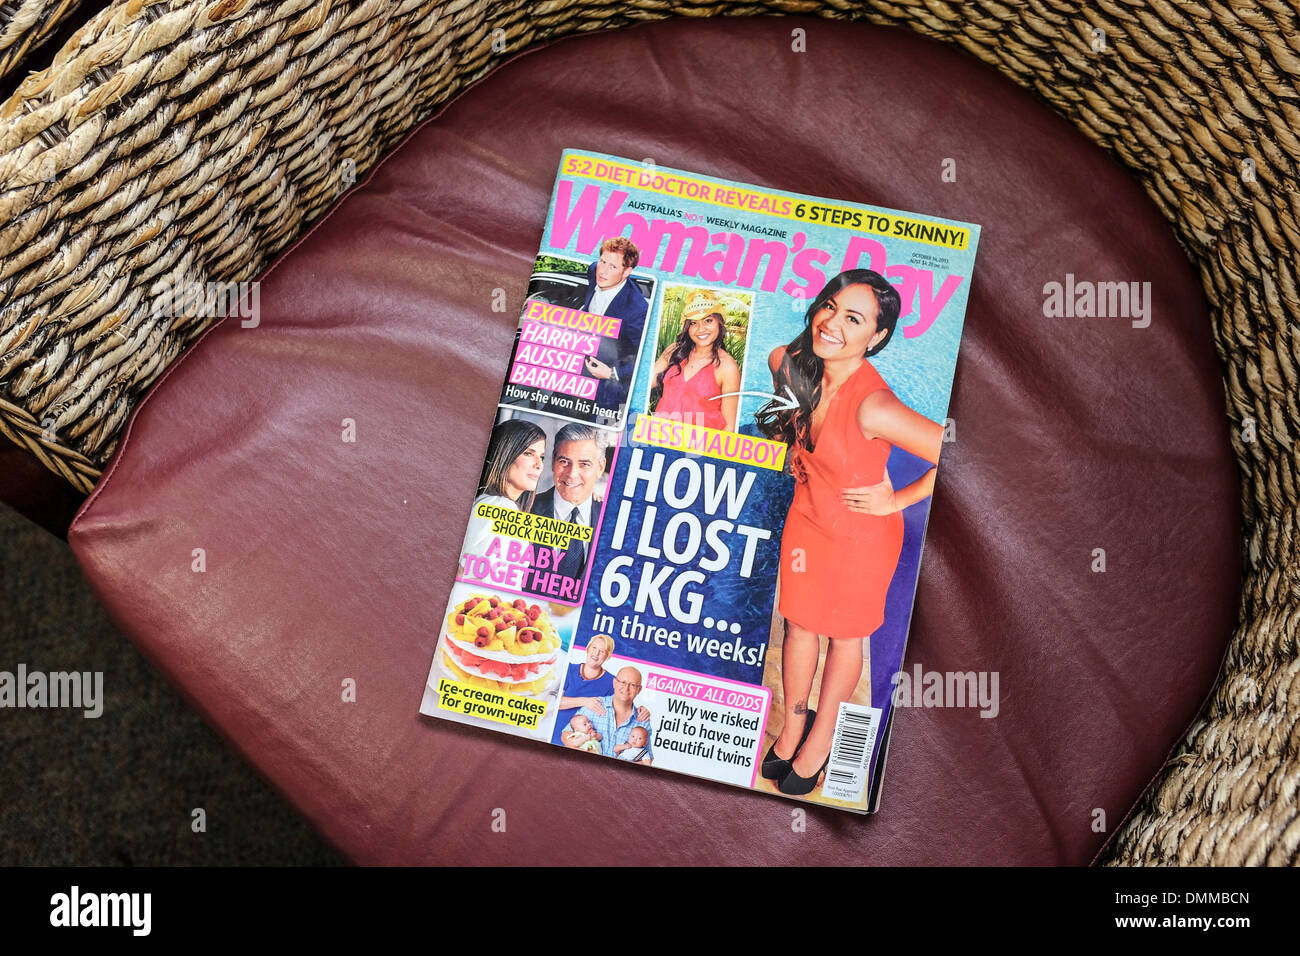 Magazine in a dentist waiting room with the usual 'how I lost weight' cover story - Stock Image